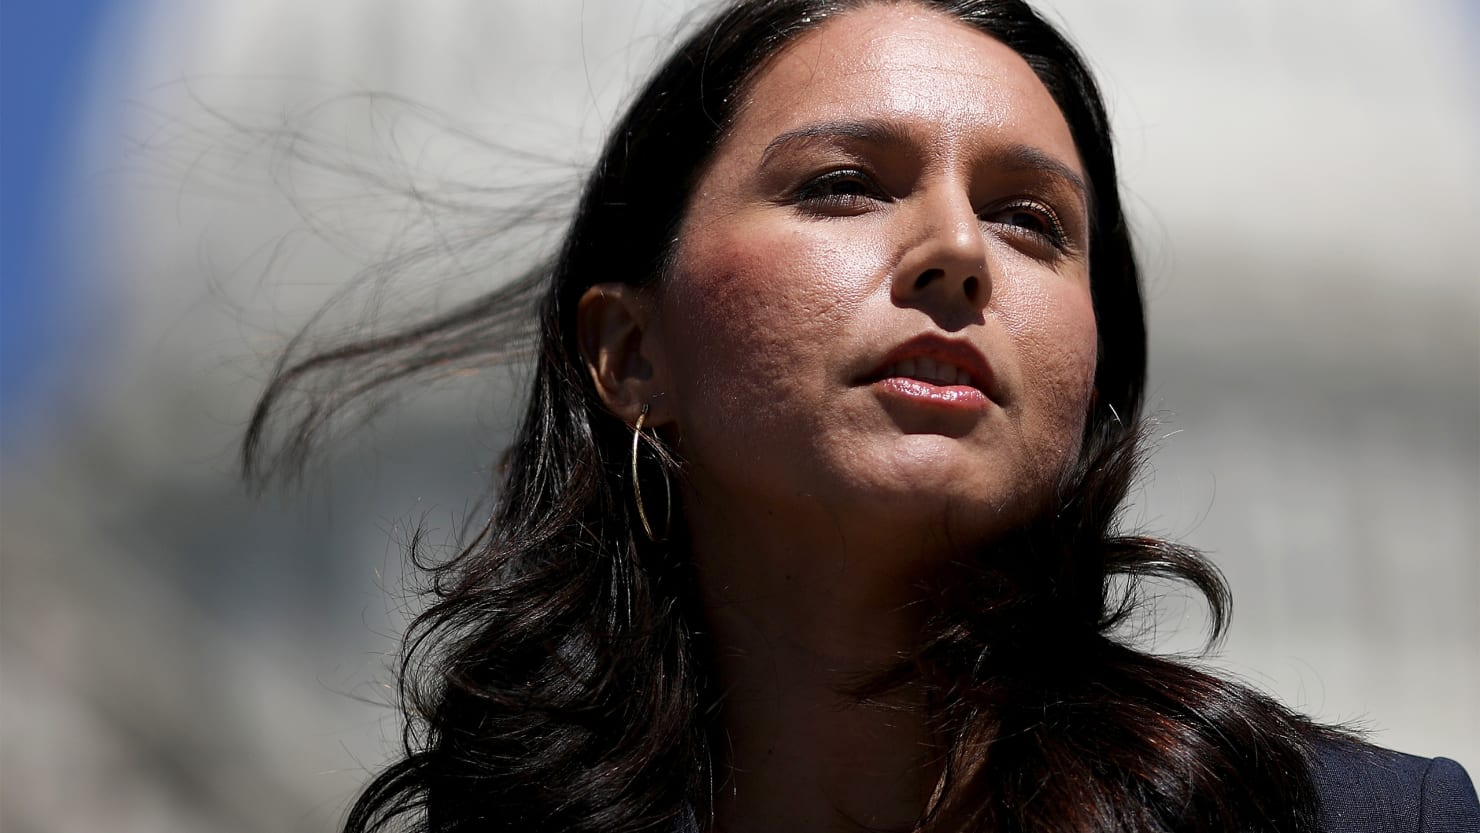 Why Conservative Media and the Far Right Love Tulsi Gabbard for President